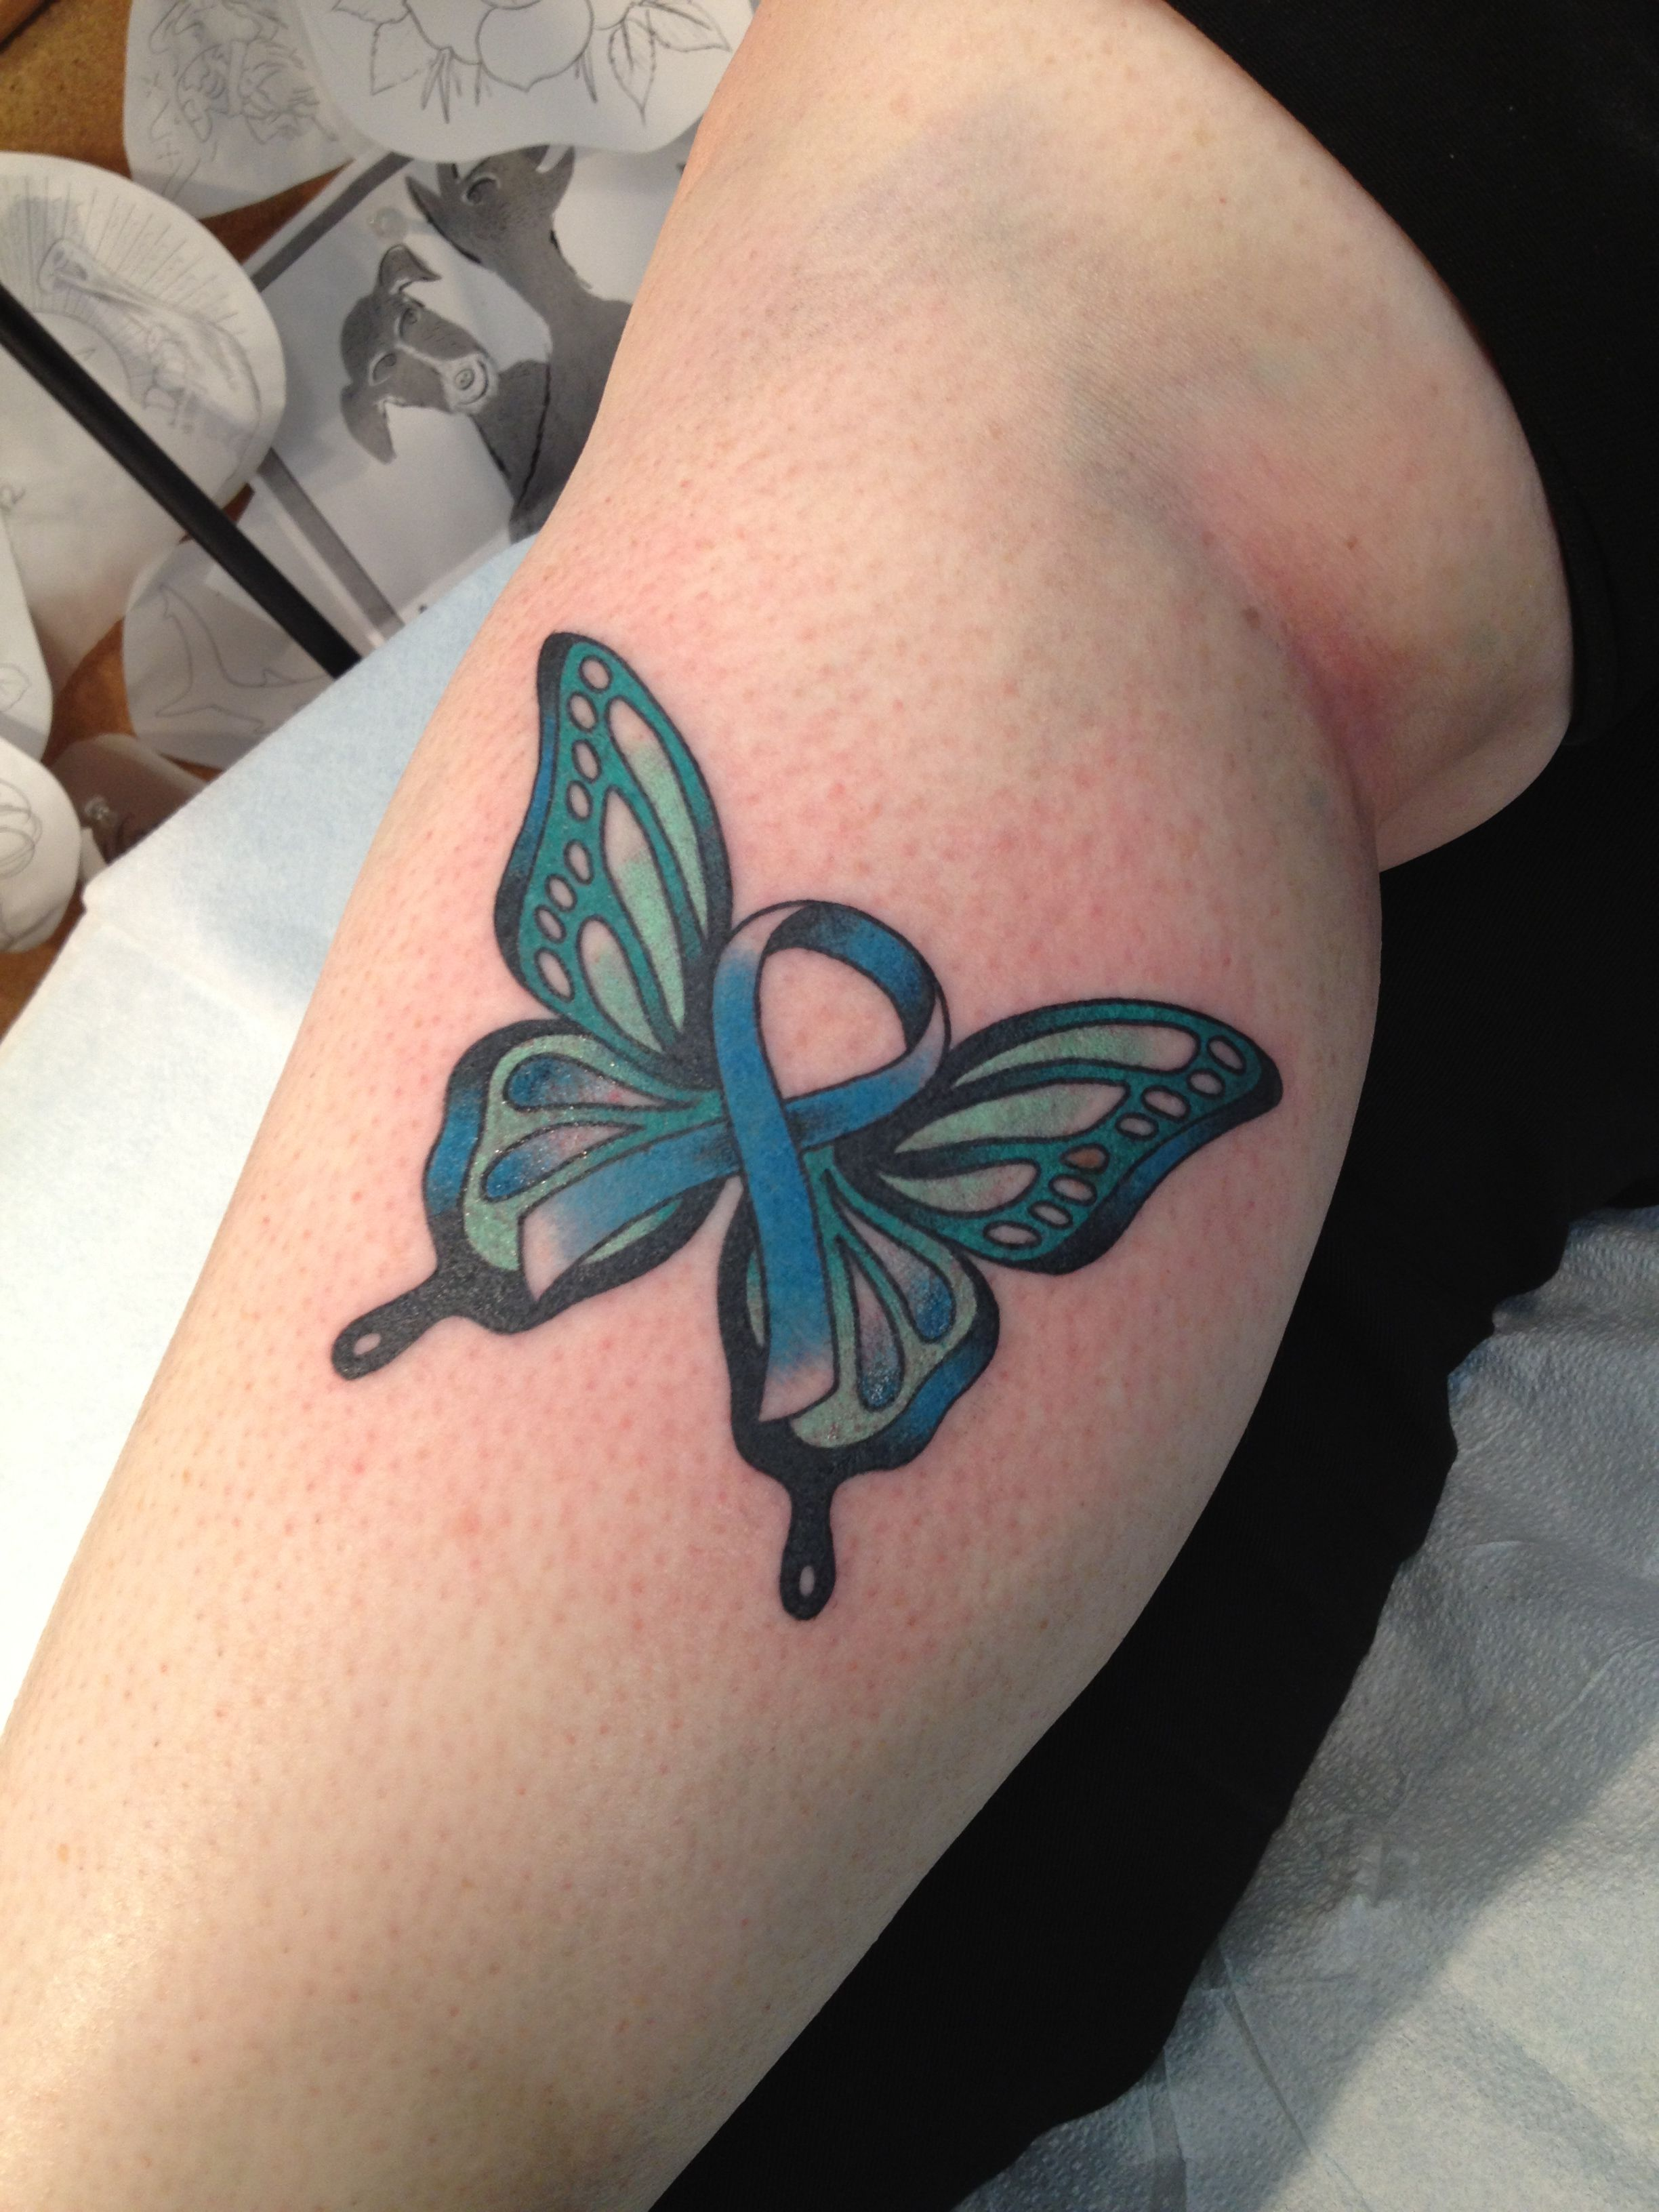 tattoo to celebrate 2 1 2 years of being in remission from ovarian cancer sept ovarian cancer. Black Bedroom Furniture Sets. Home Design Ideas